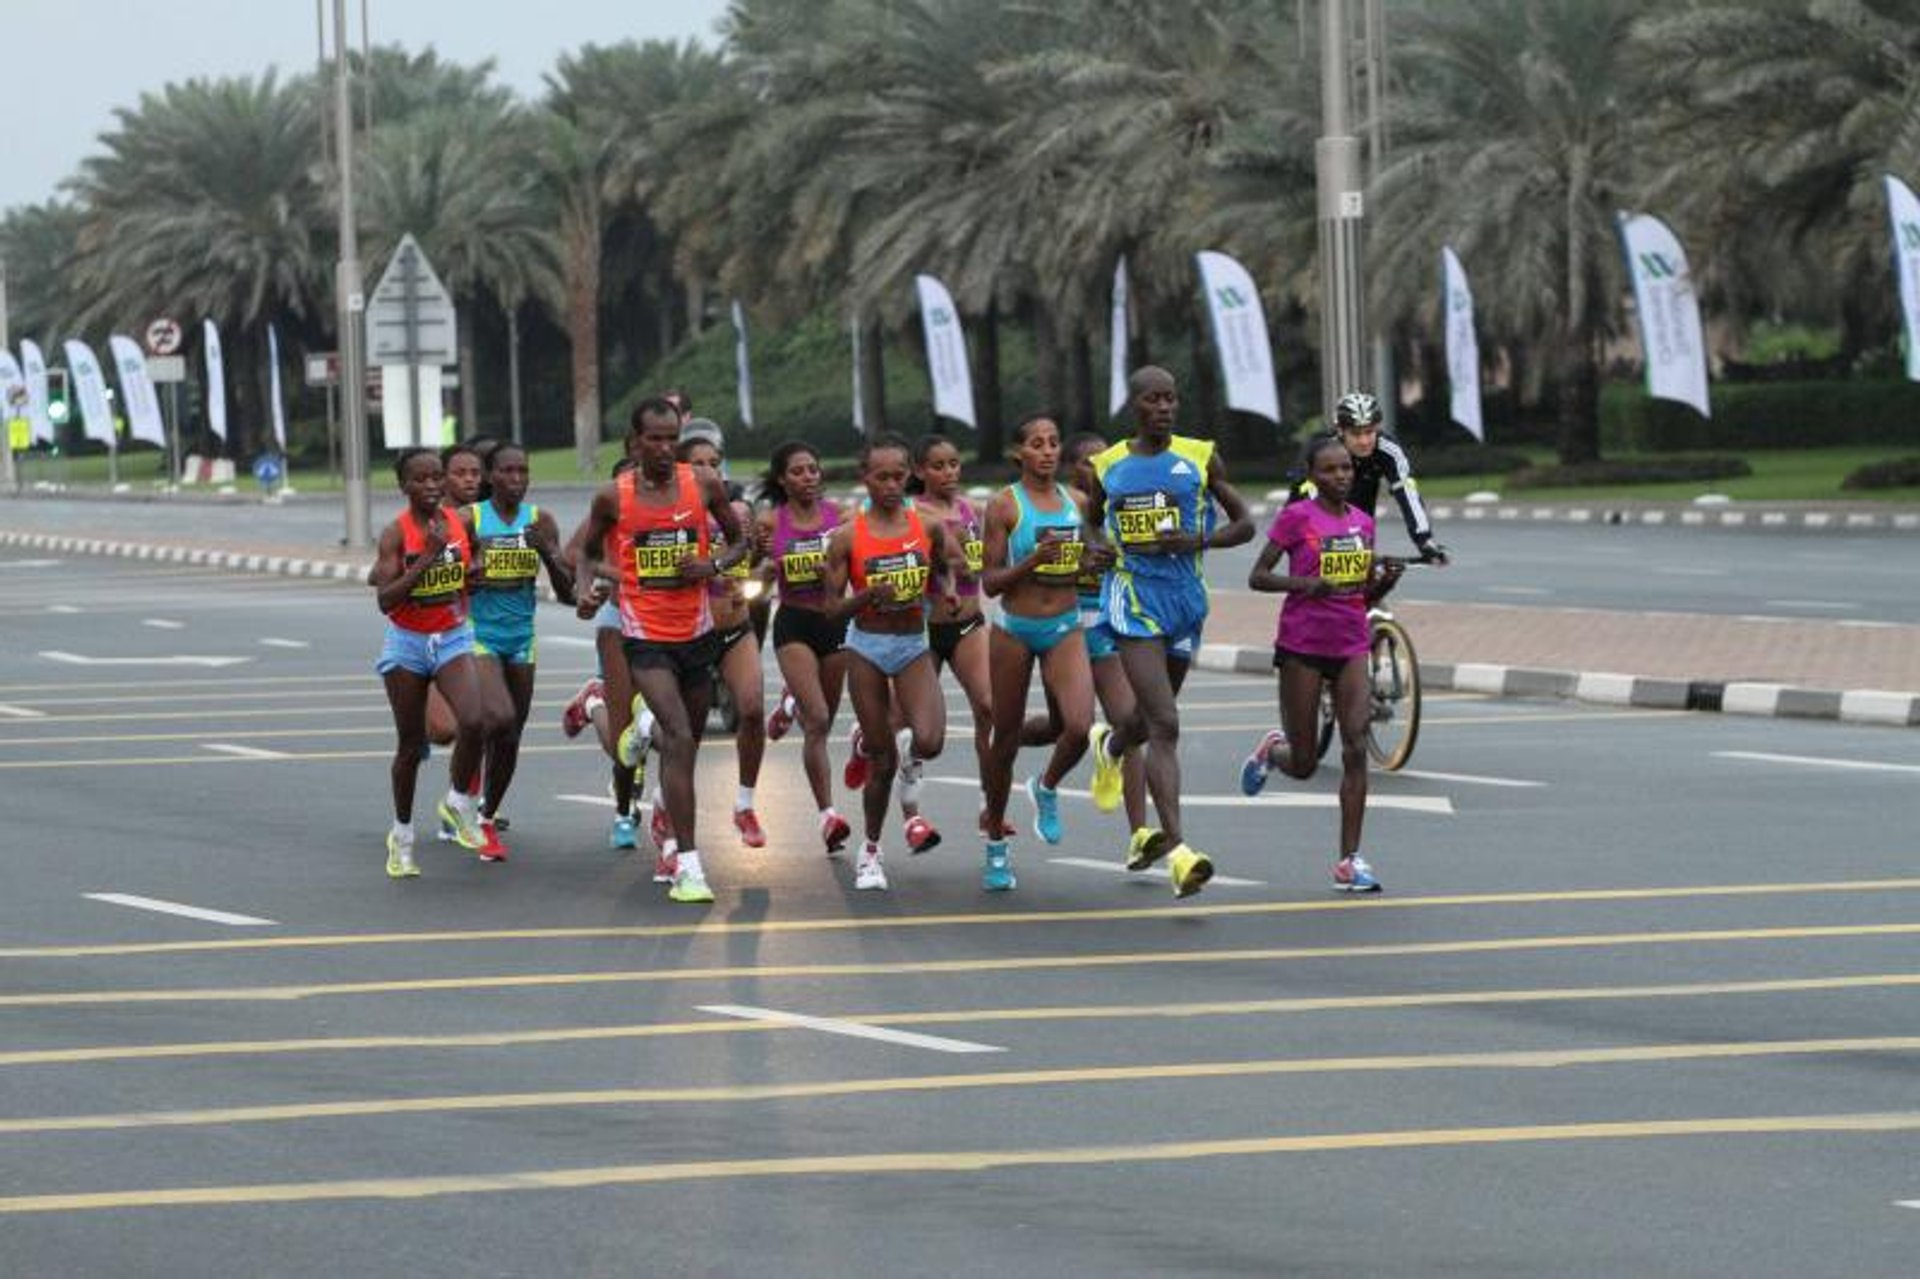 Standard Chartered Dubai Marathon in Dubai 2020 - Best Time